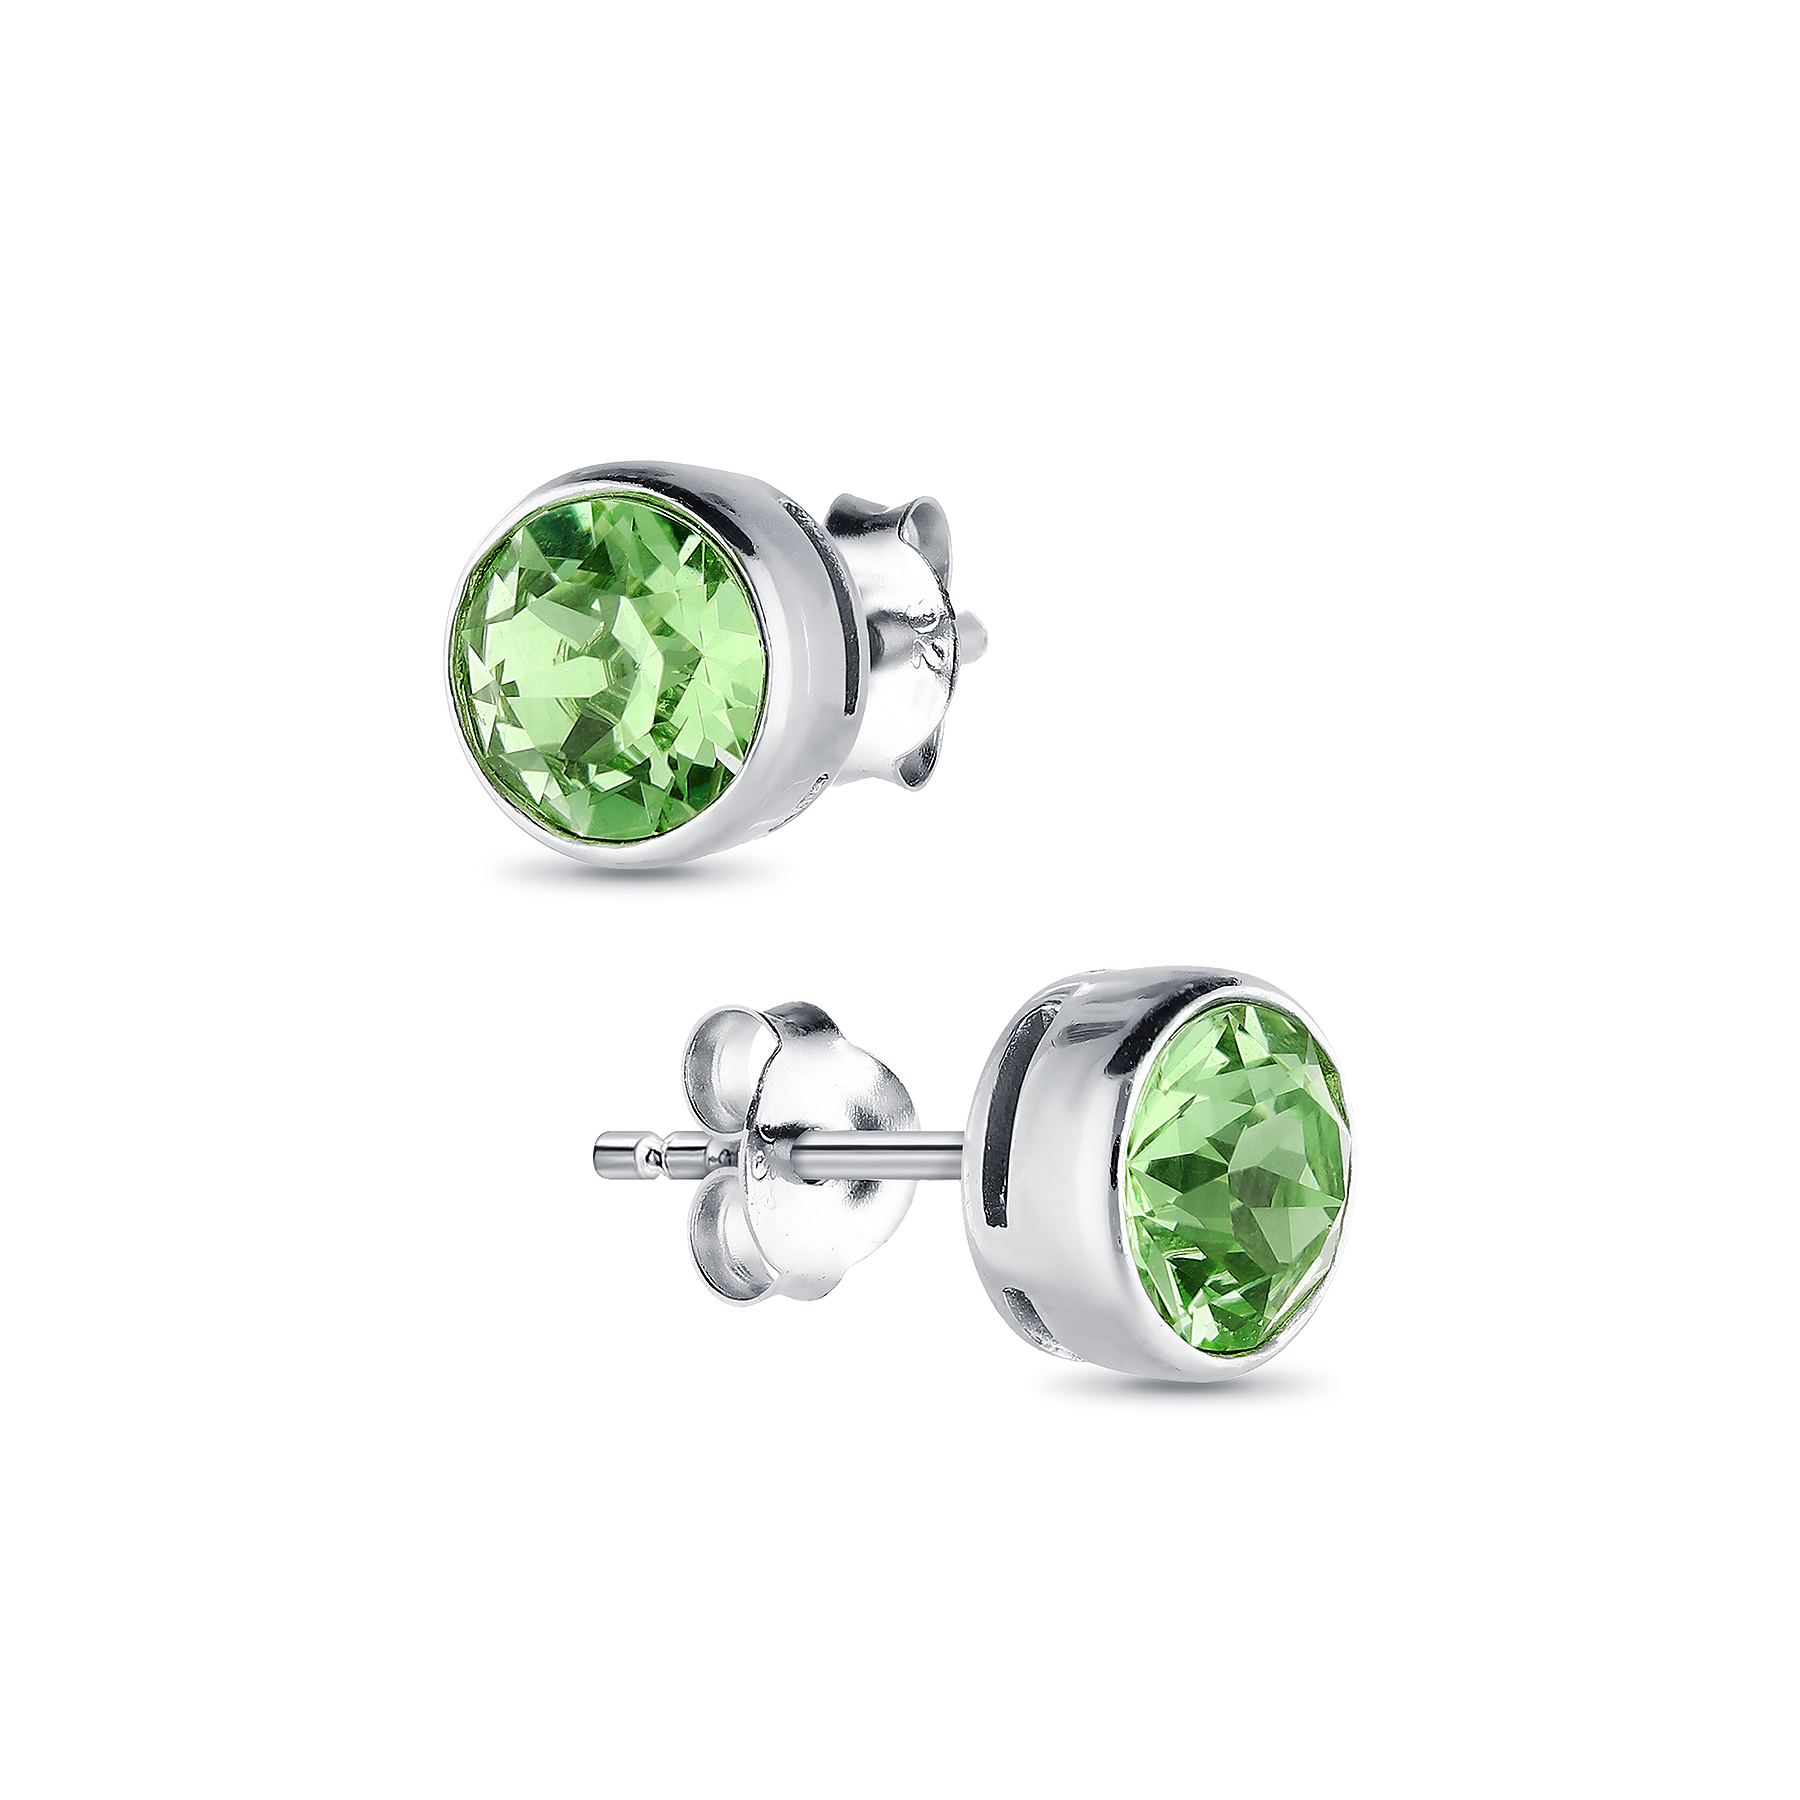 1583-163 - Sparkle by 7K - 925 Sterling Silver Push-Back Earrings Decorated With Verifiable Authentic Swarovski Crystals